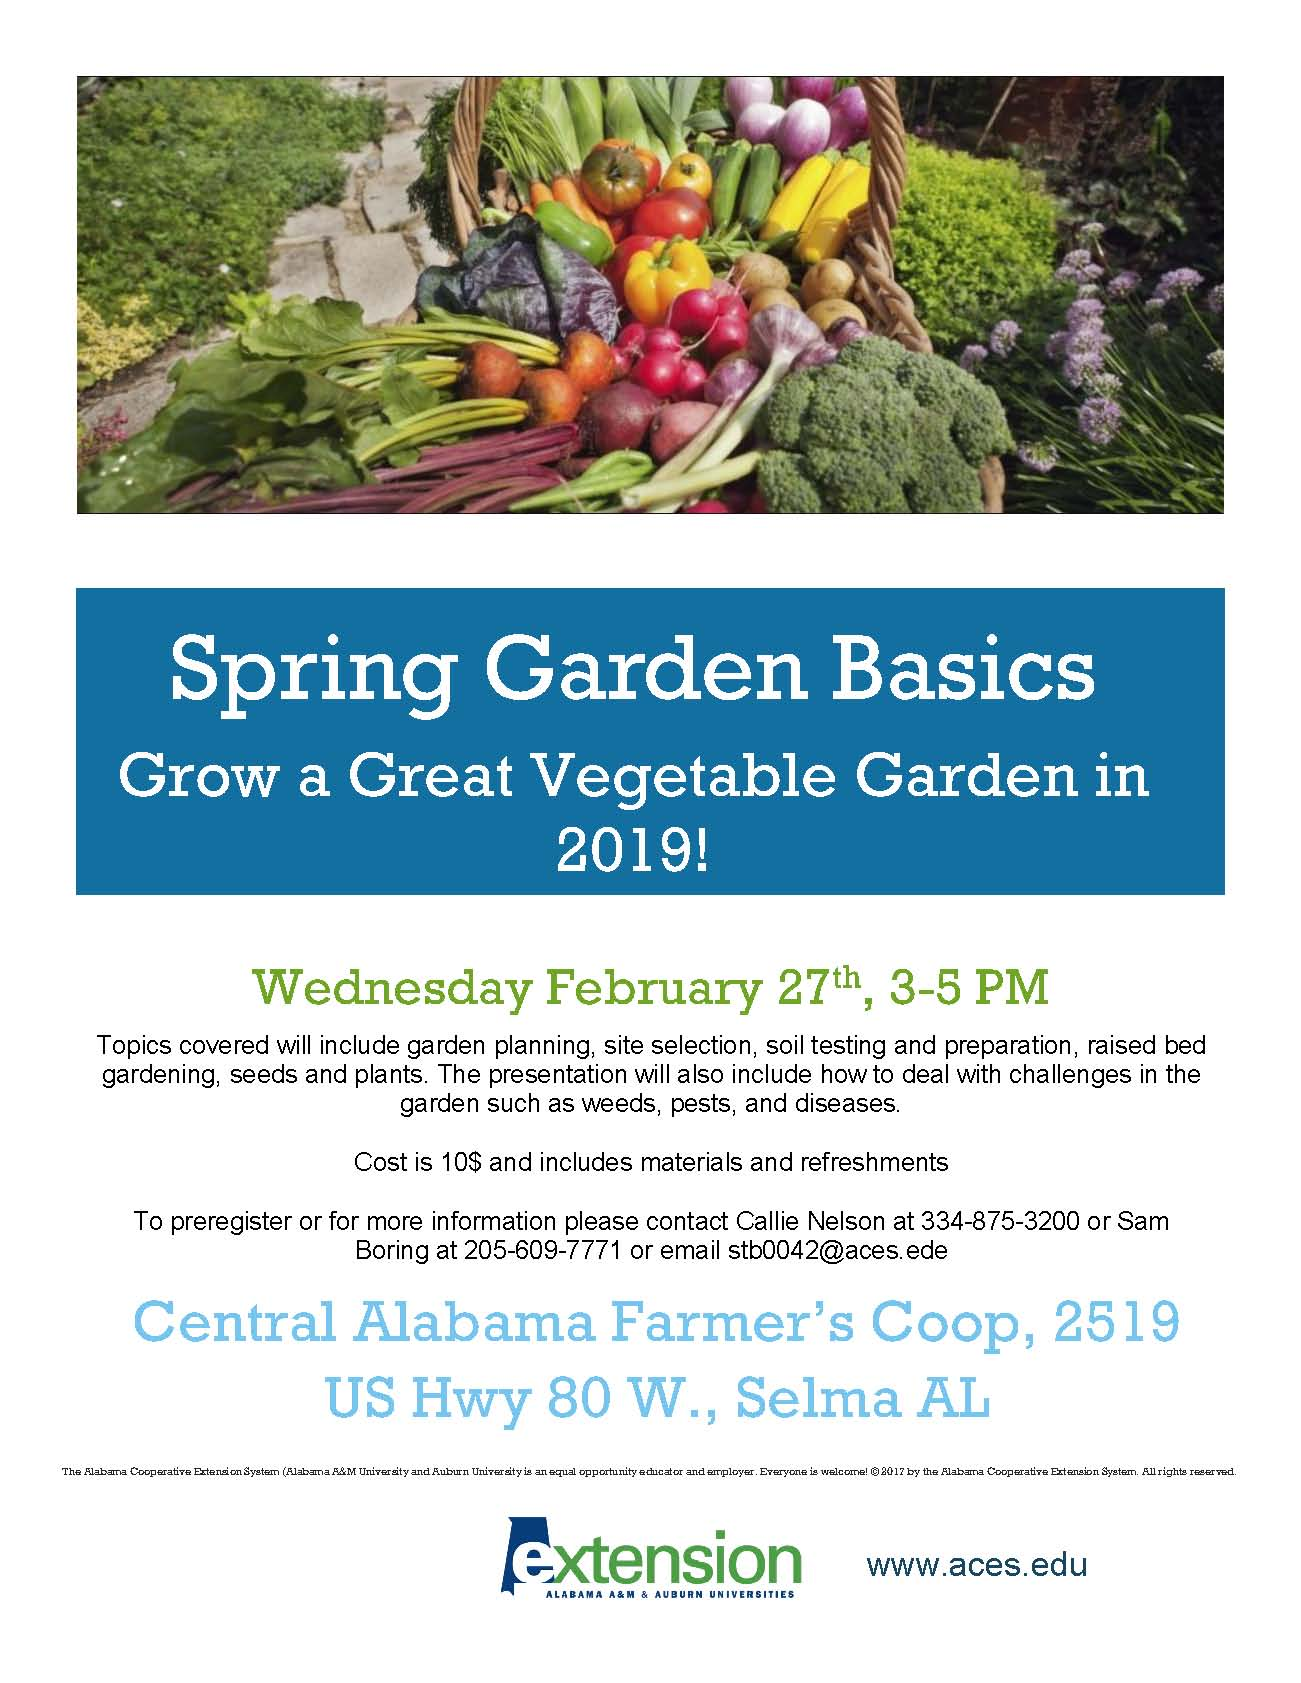 Dallas garden basics flyer2019